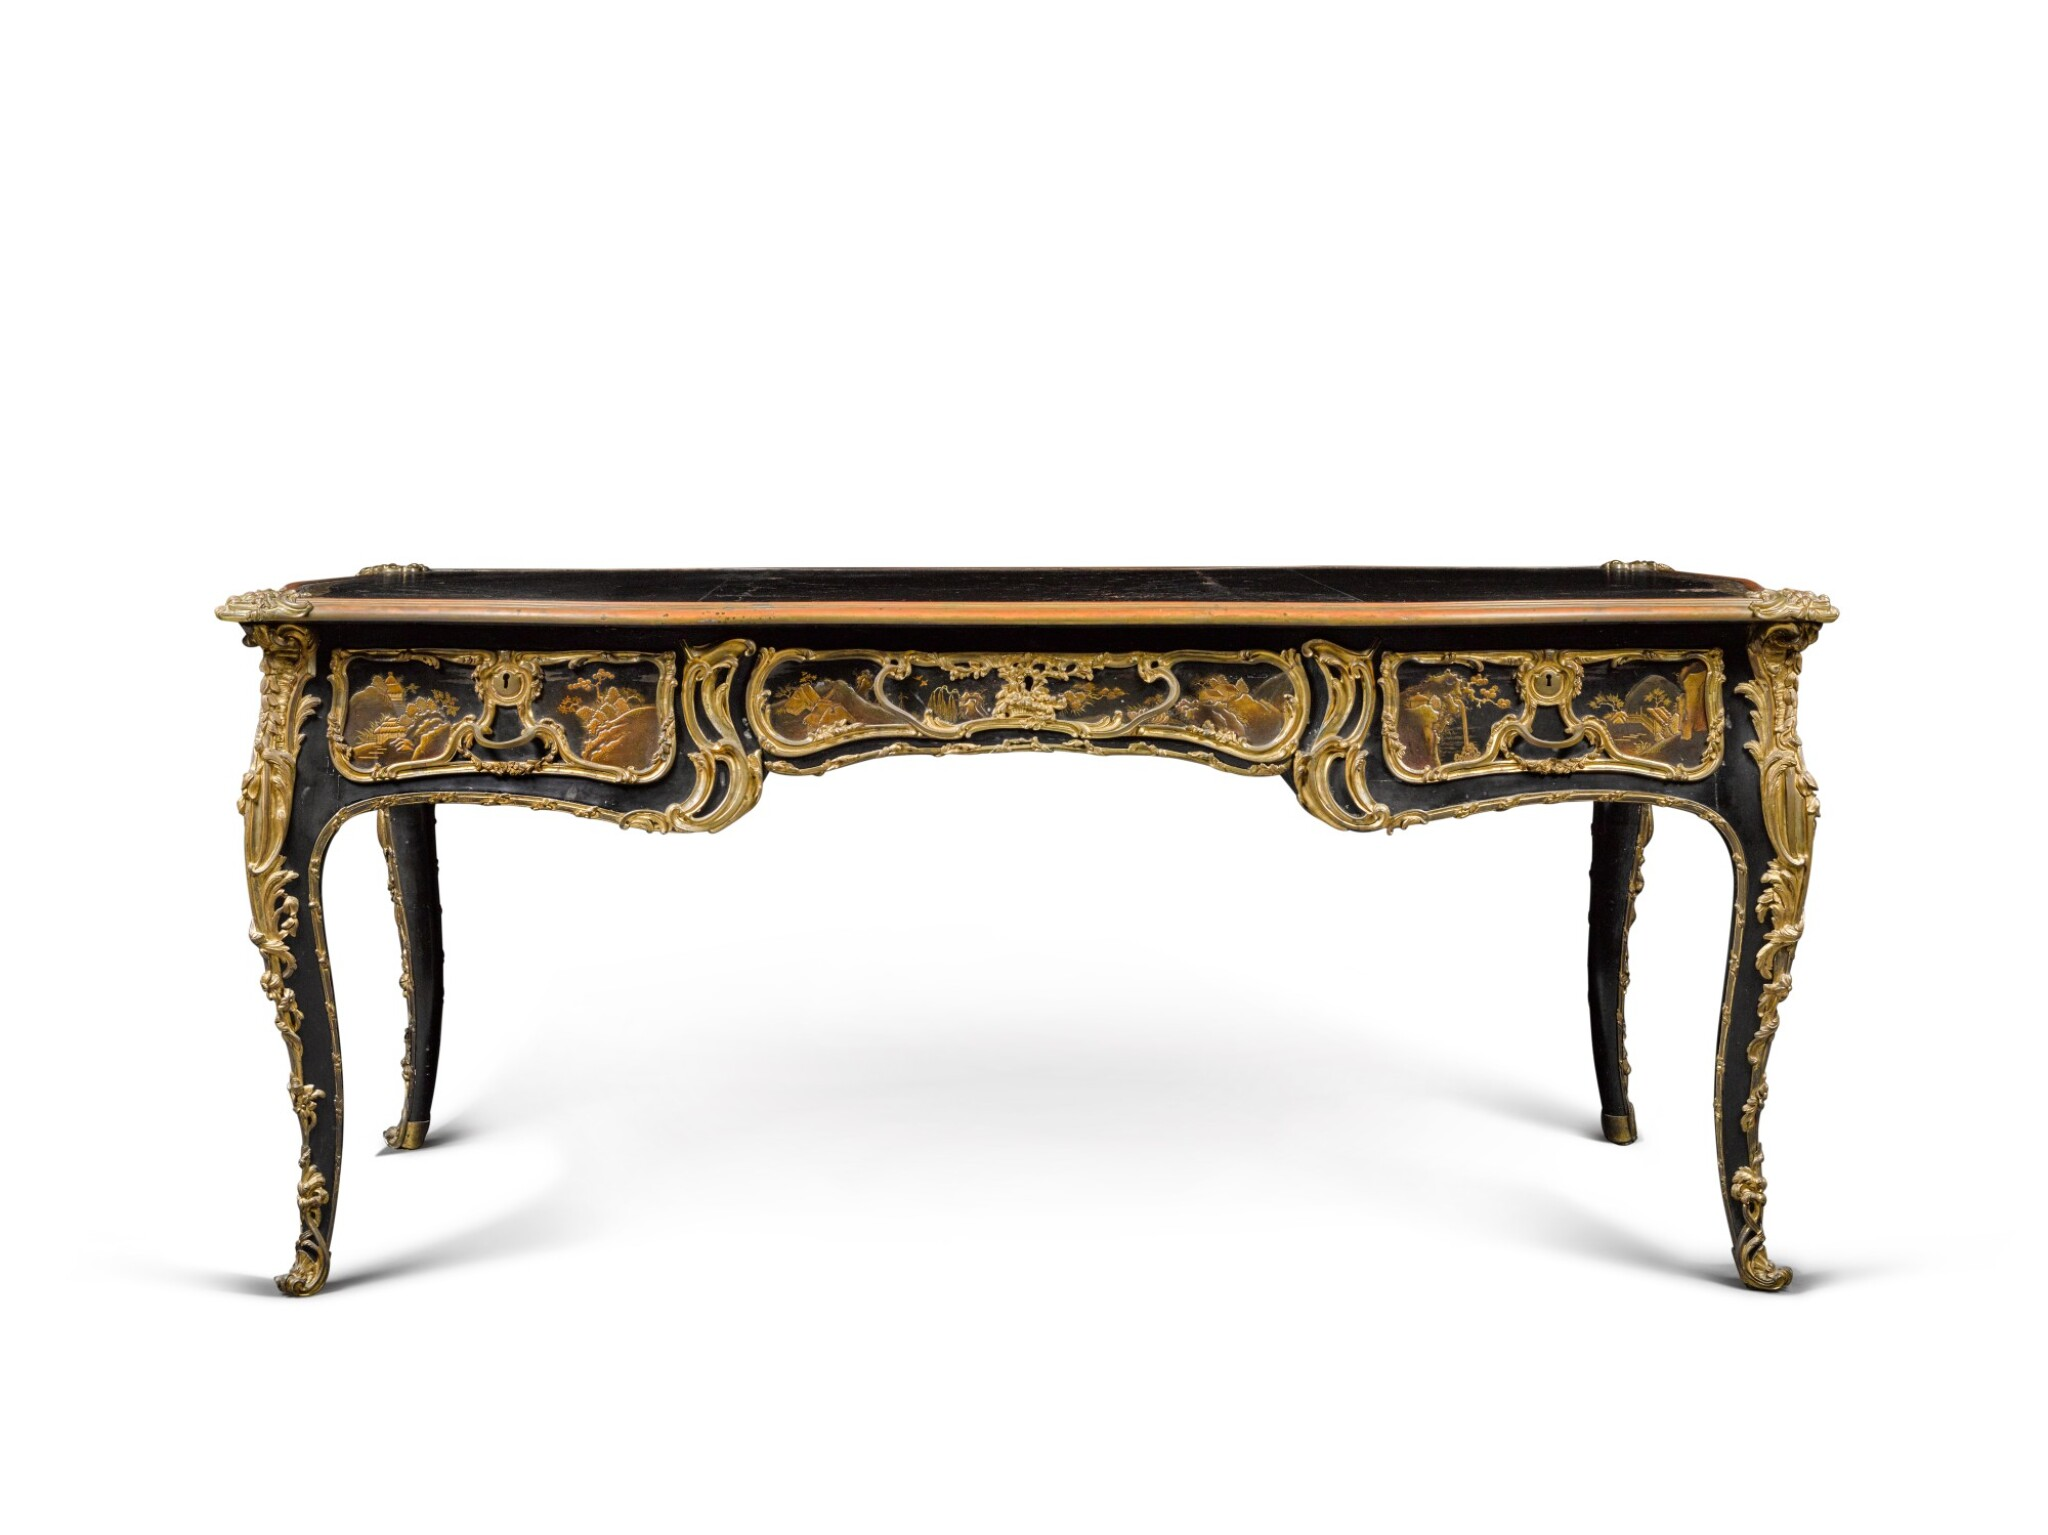 View full screen - View 1 of Lot 12. A LOUIS XV STYLE GILT-BRONZE MOUNTED JAPANESE BLACK LACQUER AND VERNIS MARTIN BUREAU PLAT, AFTER A MODEL BY JACQUES DUBOIS, LATE 19TH CENTURY.